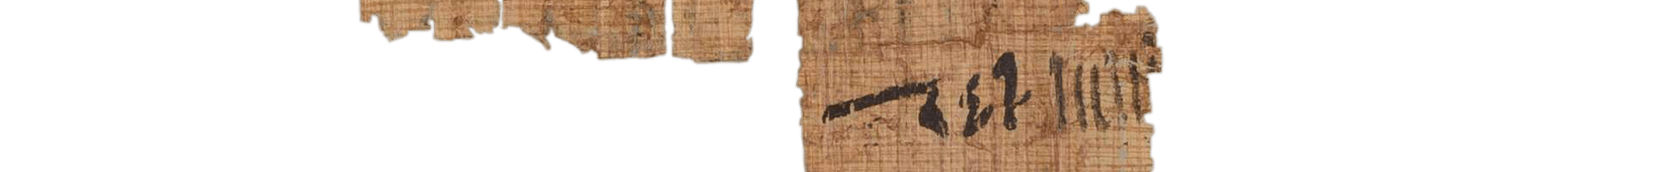 the Turin king list 4.17 (photo of the hieratic text)